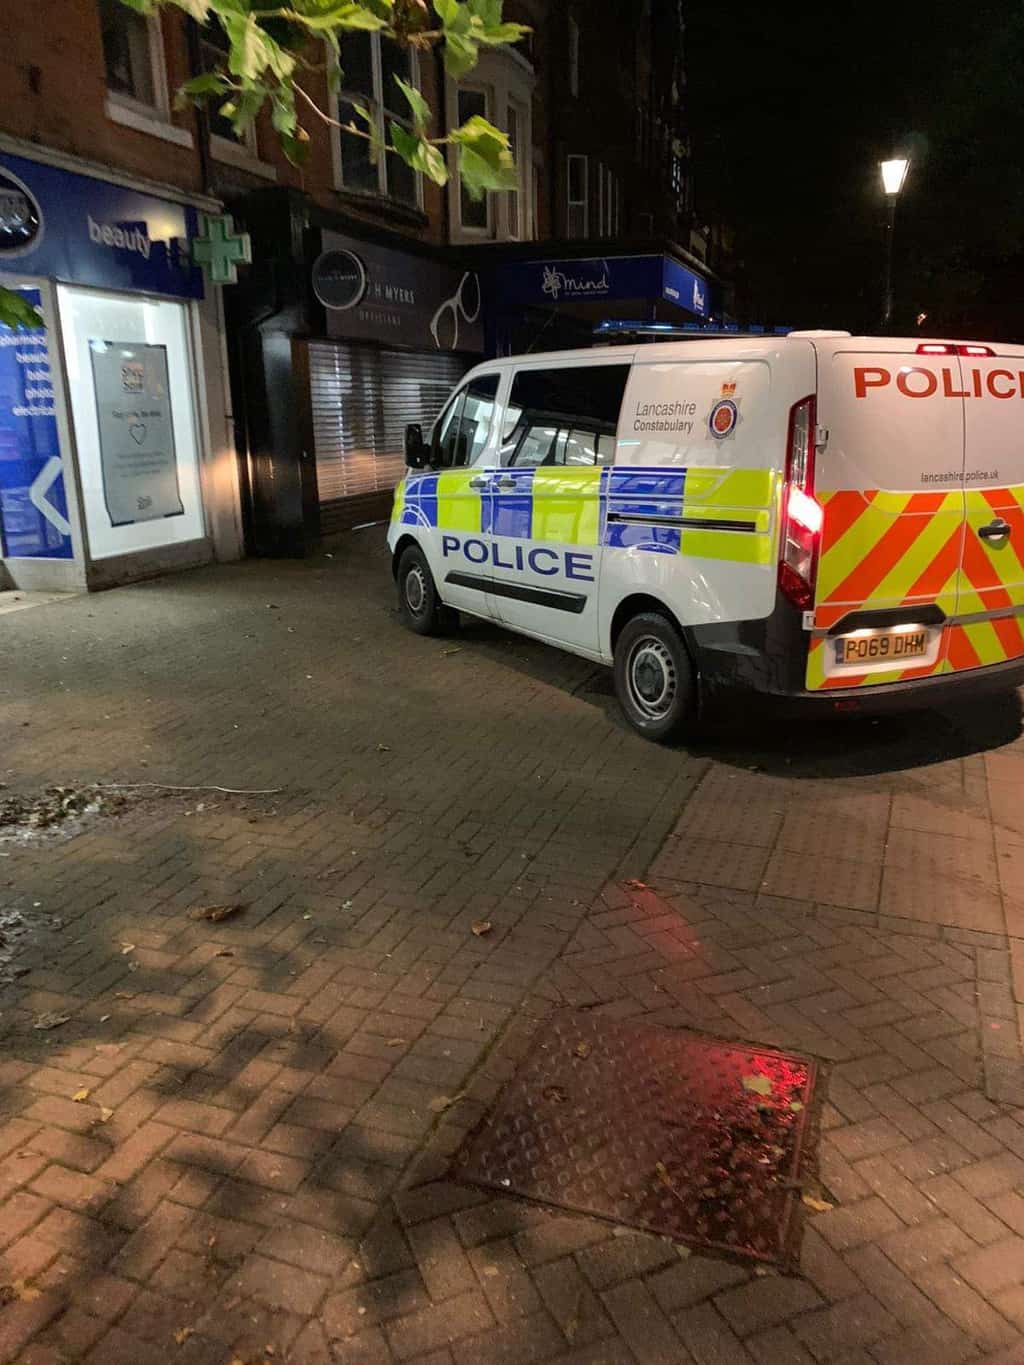 Lytham's Boots has late night break in, Police investigation ongoing